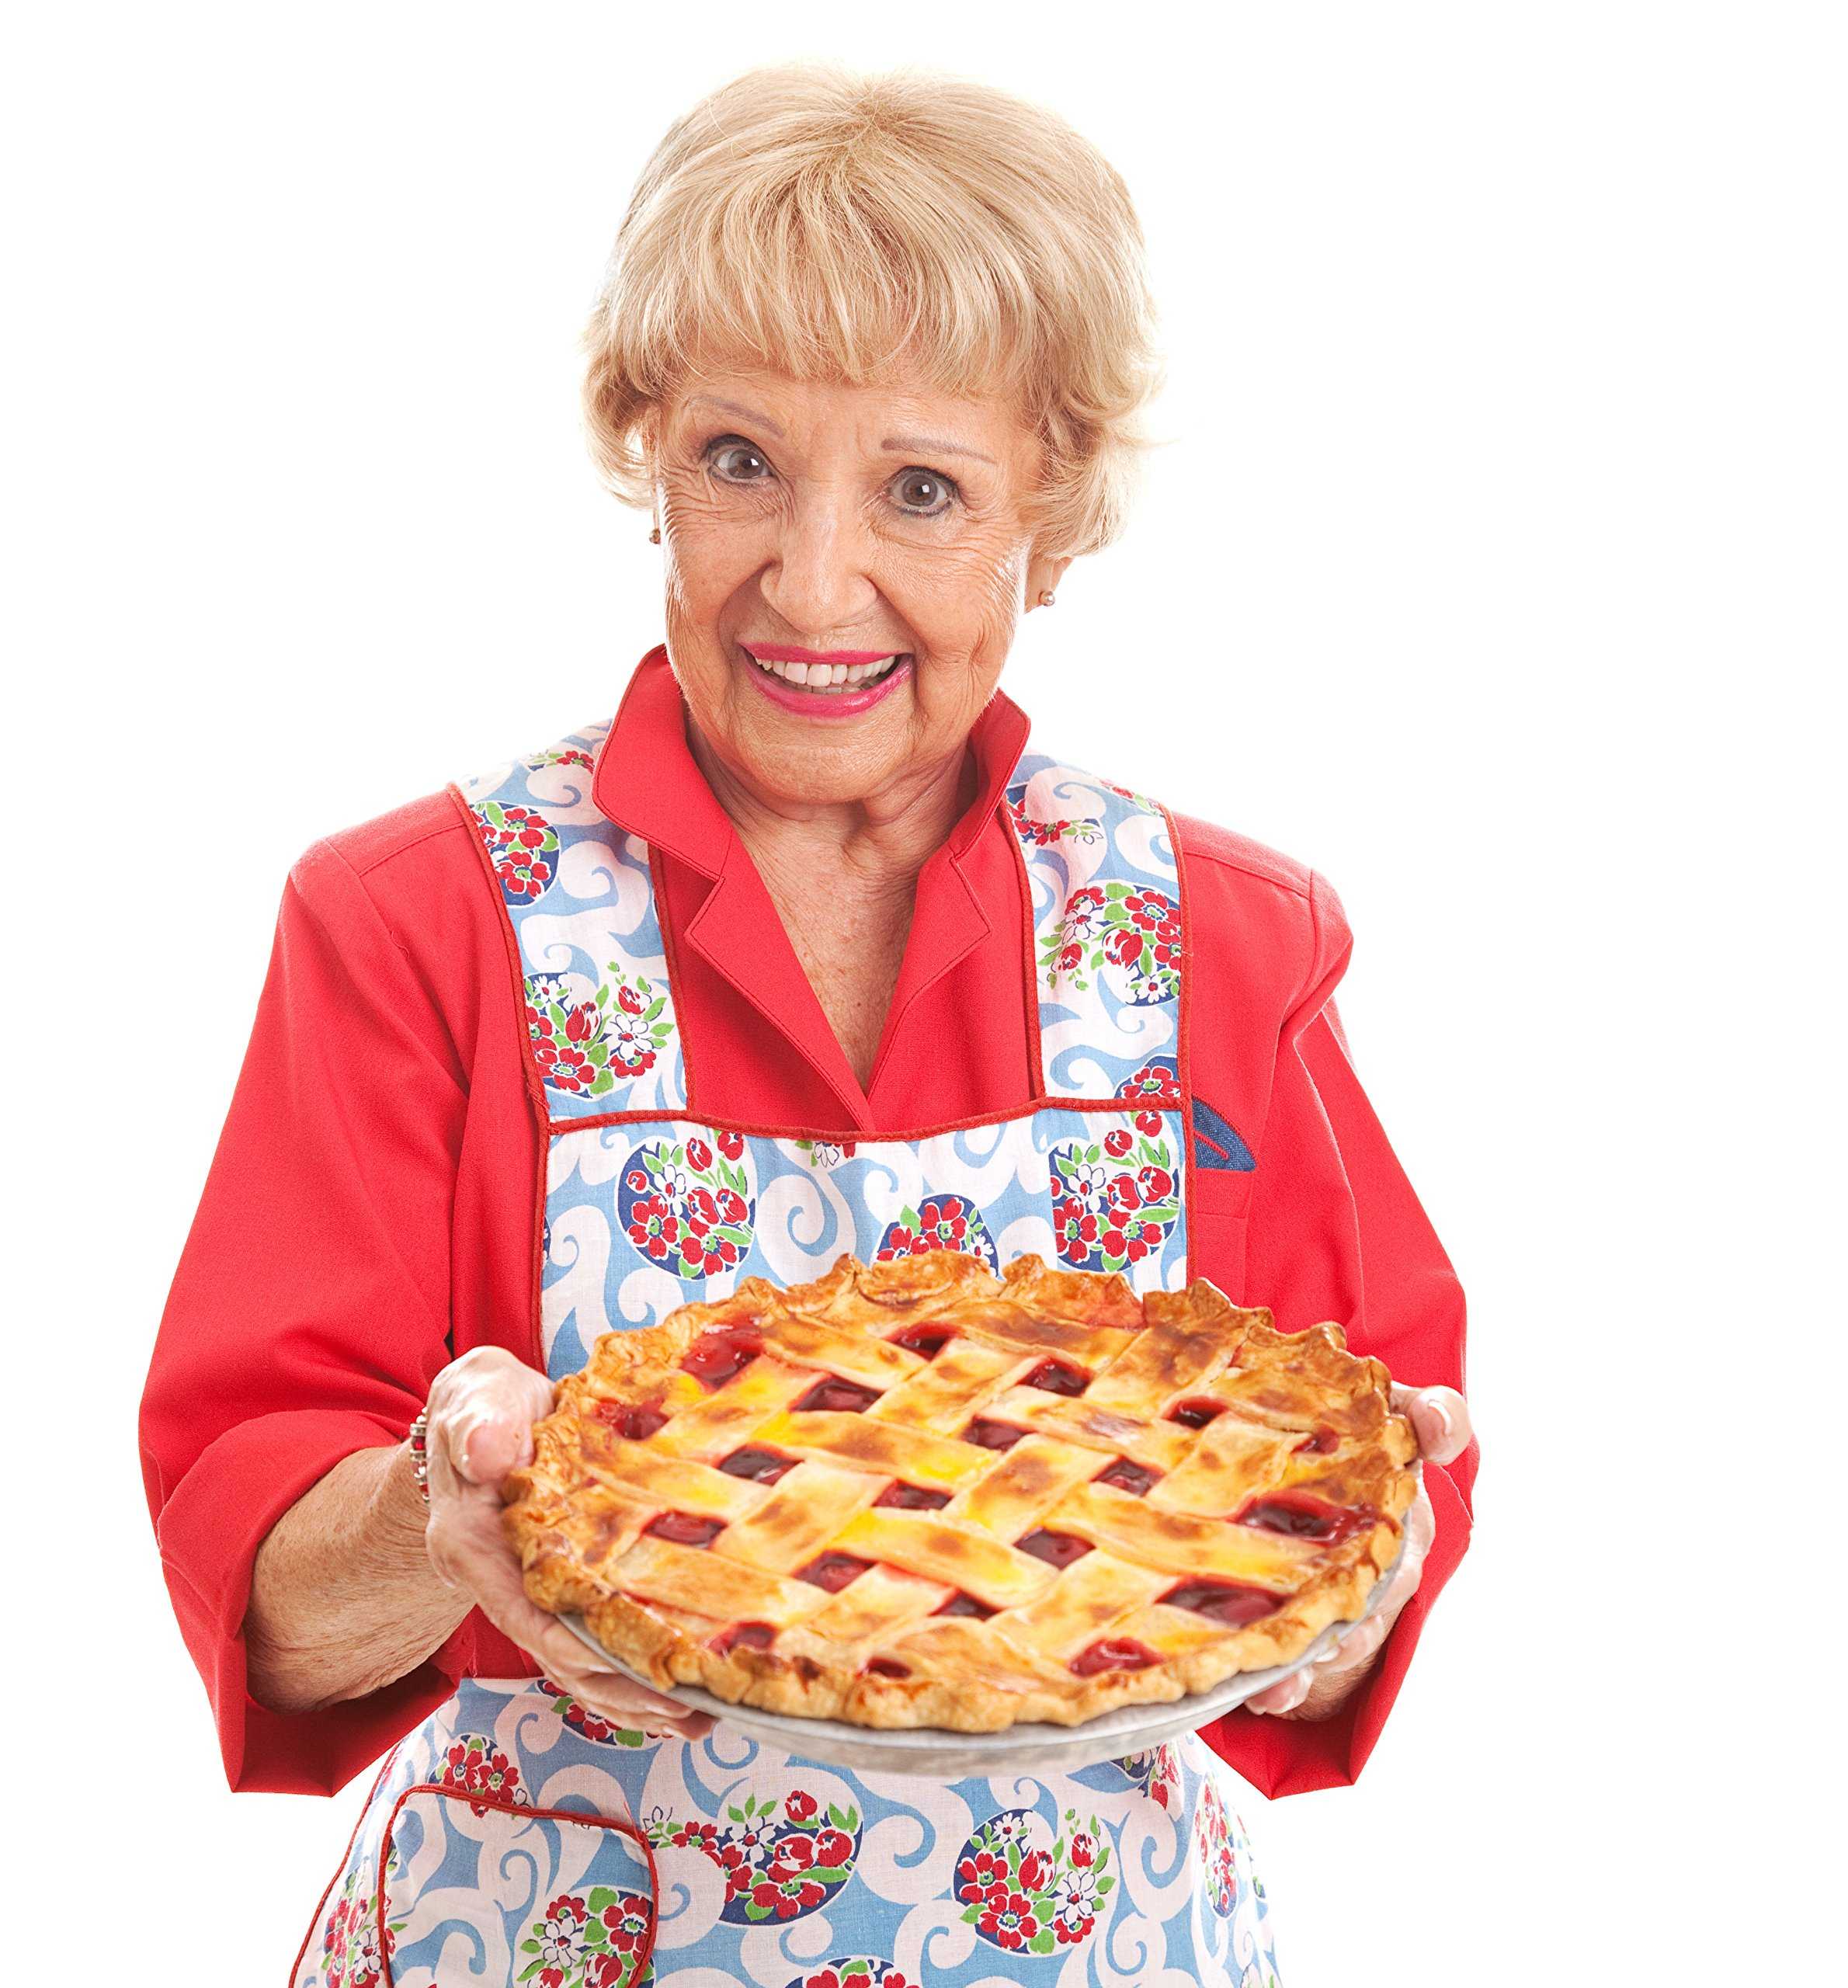 Premium 9'' Aluminum Foil Pie Pans. Disposable Tin Plates for Pies Tart Quiche. (Pack of 50) by Gypsy's Cart (Image #8)